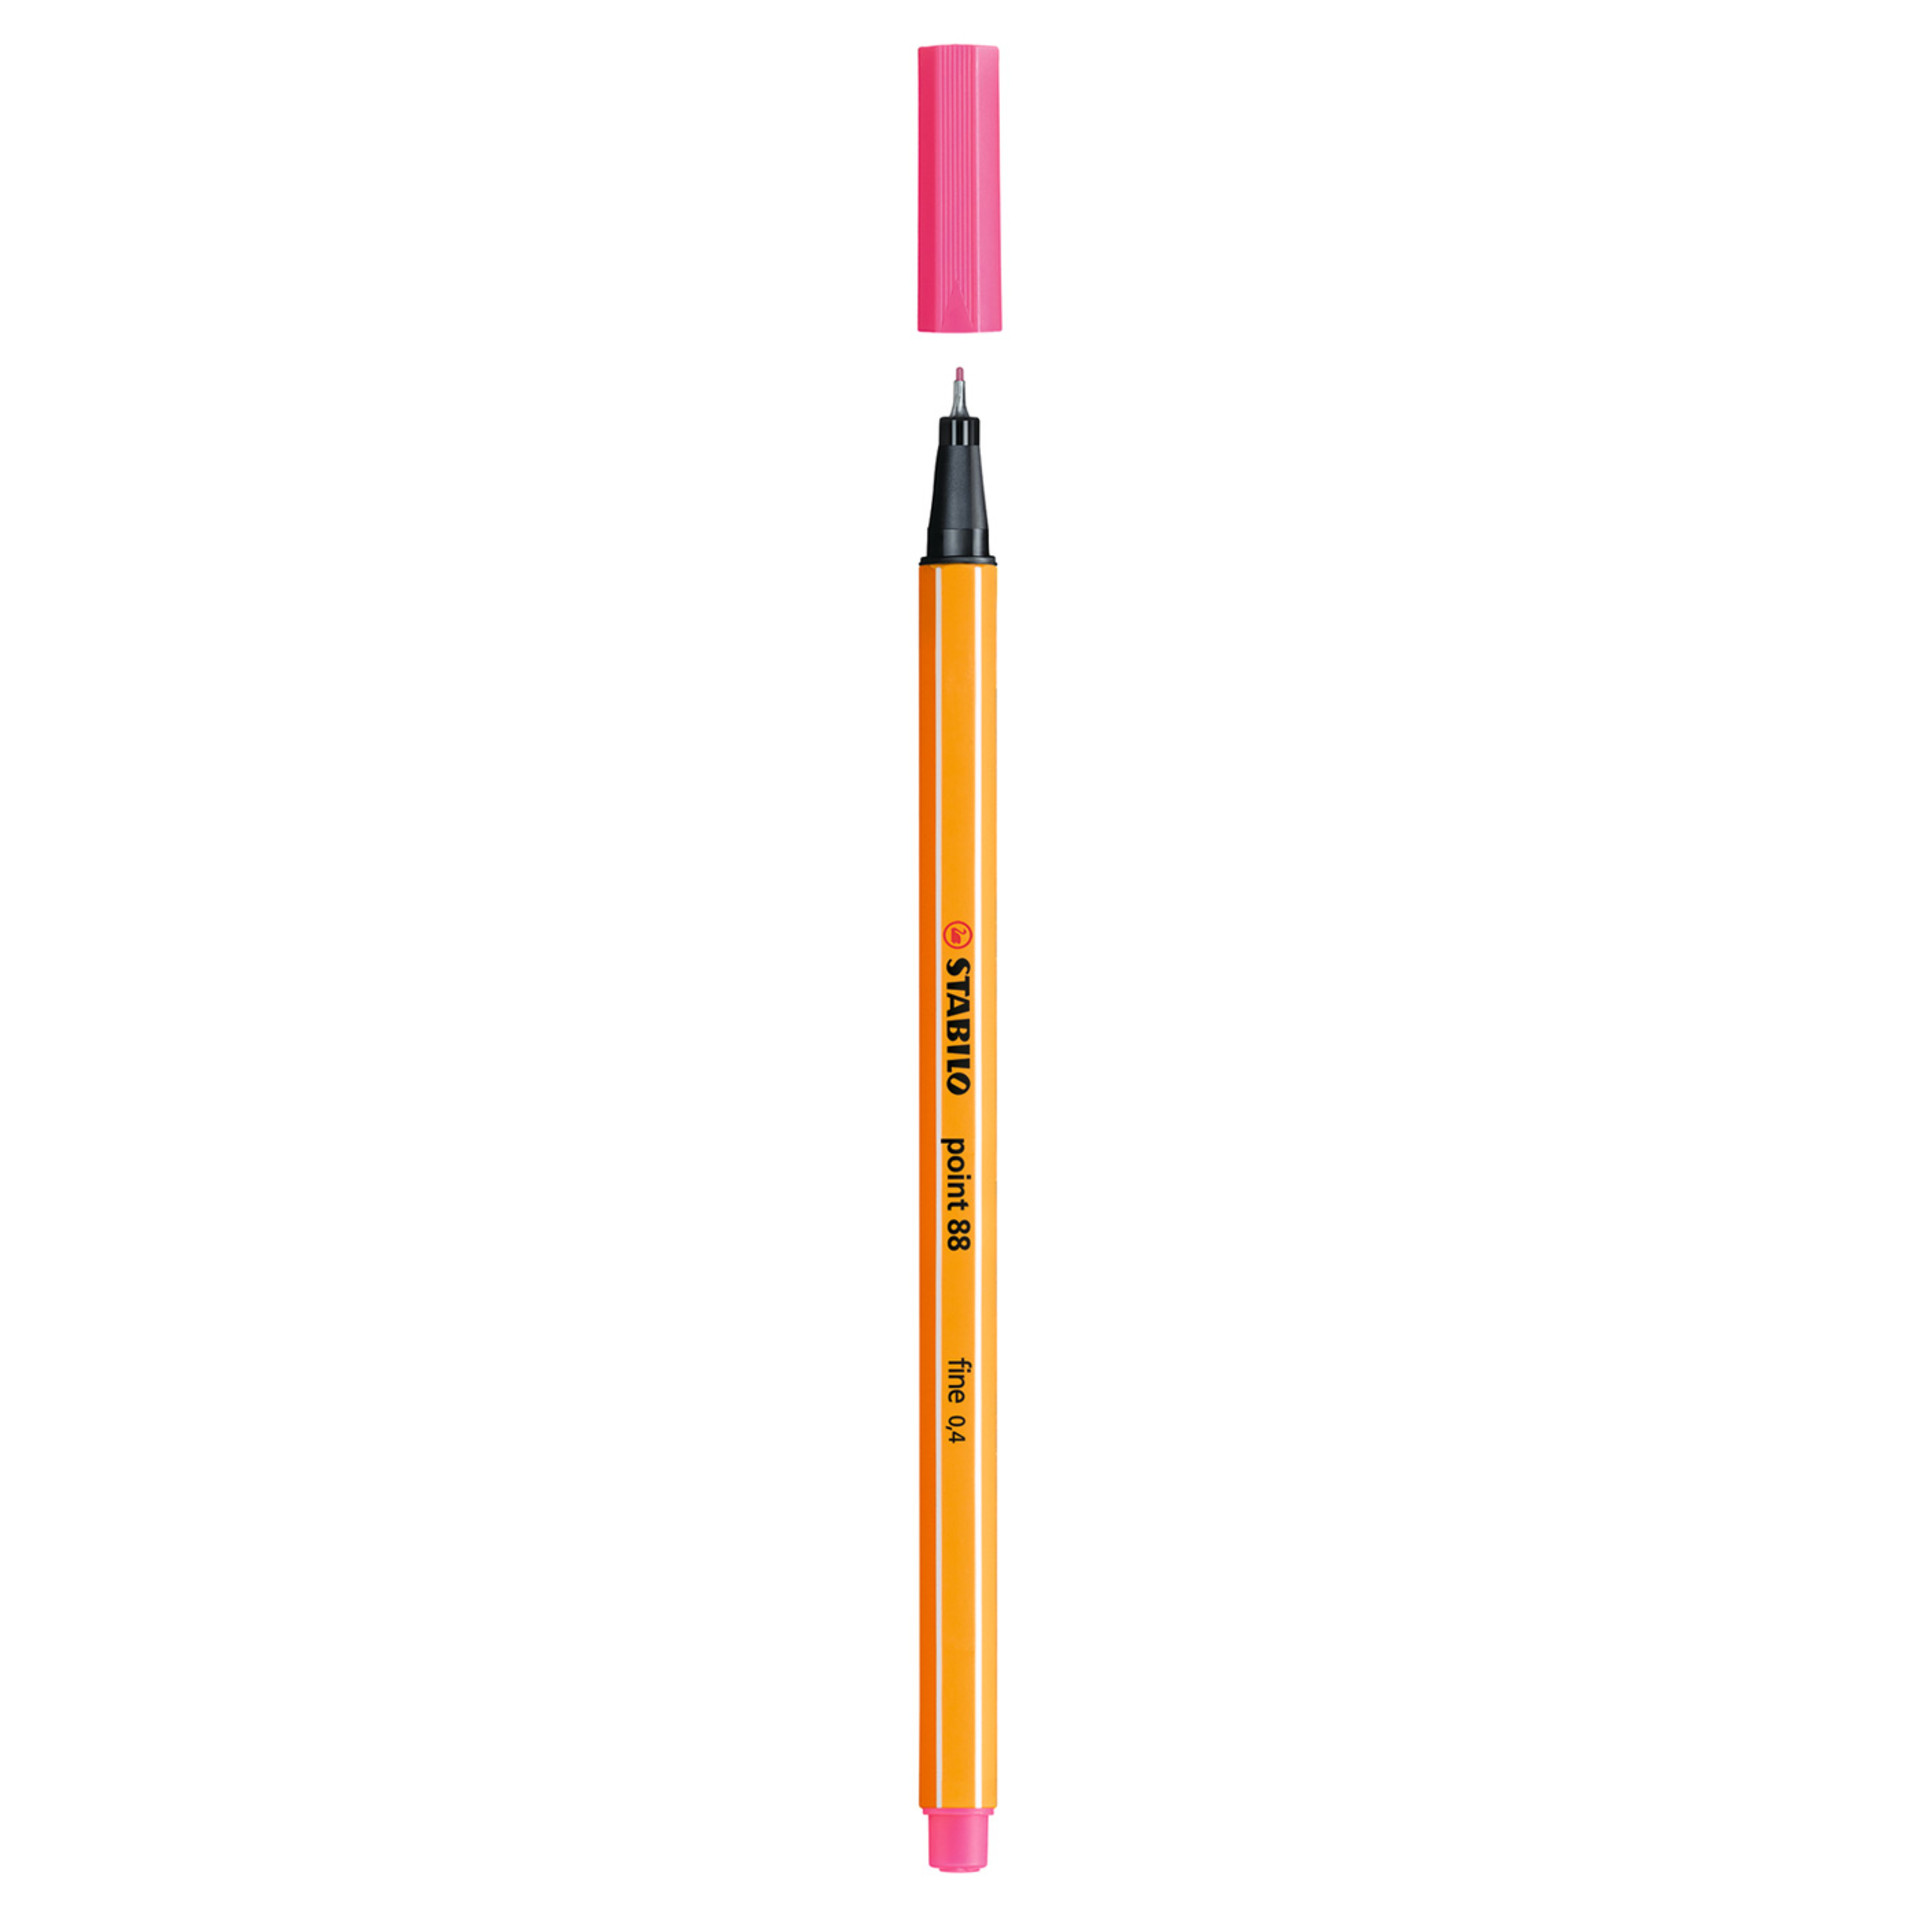 Stabilo Point 88 .4mm Fineliner Pen – Heliotrope